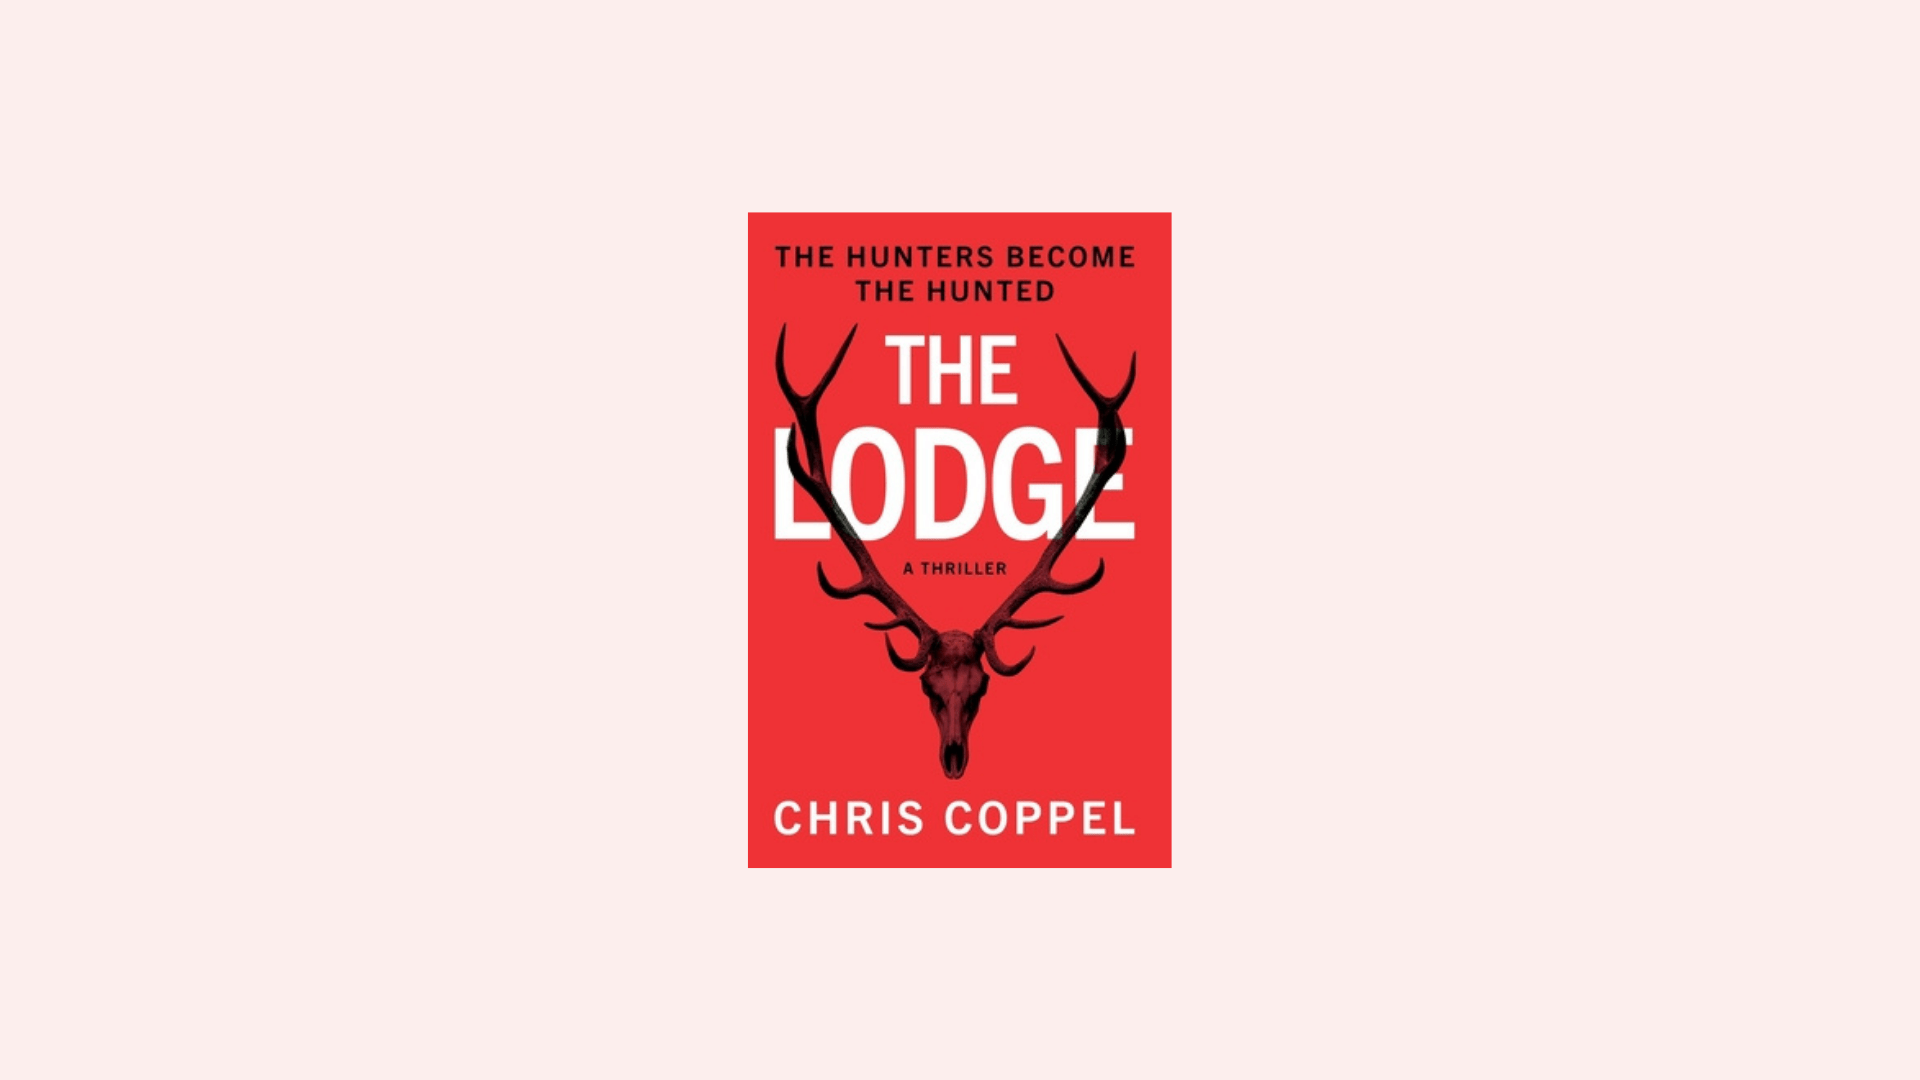 A photo of the book The Lodge by Chris Coppel